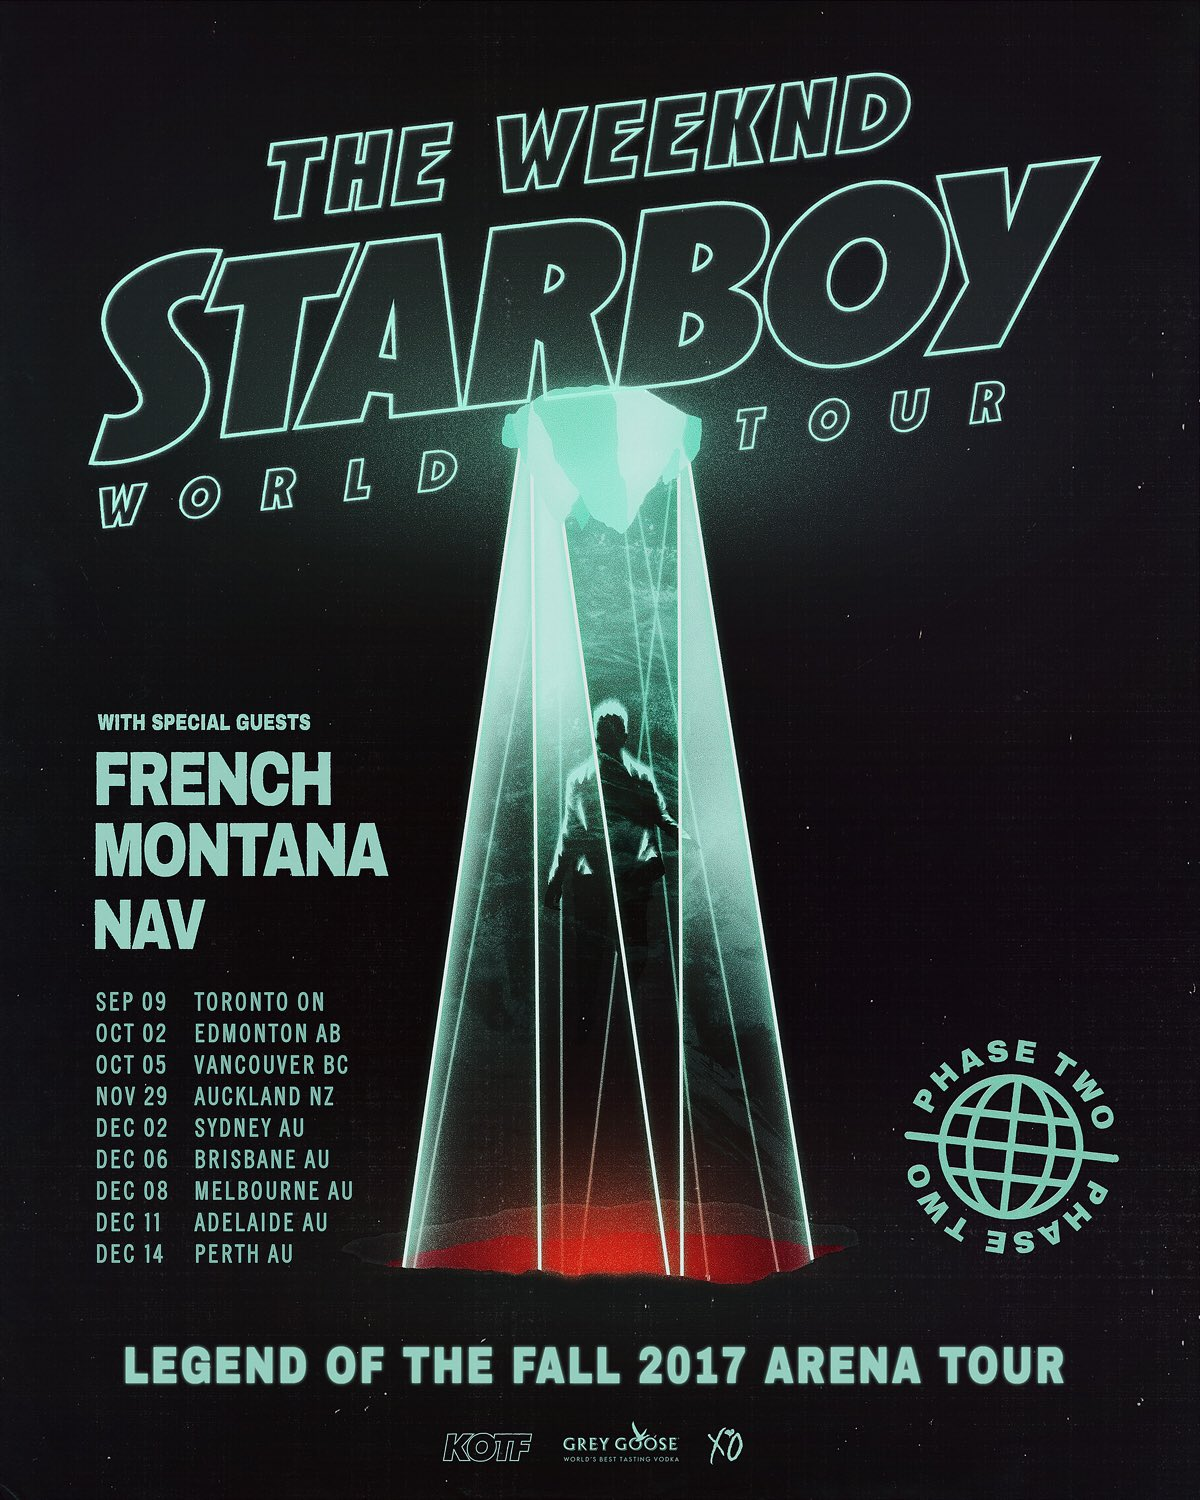 The WEEKND with guests French Montana and RAV @ Rogers Place